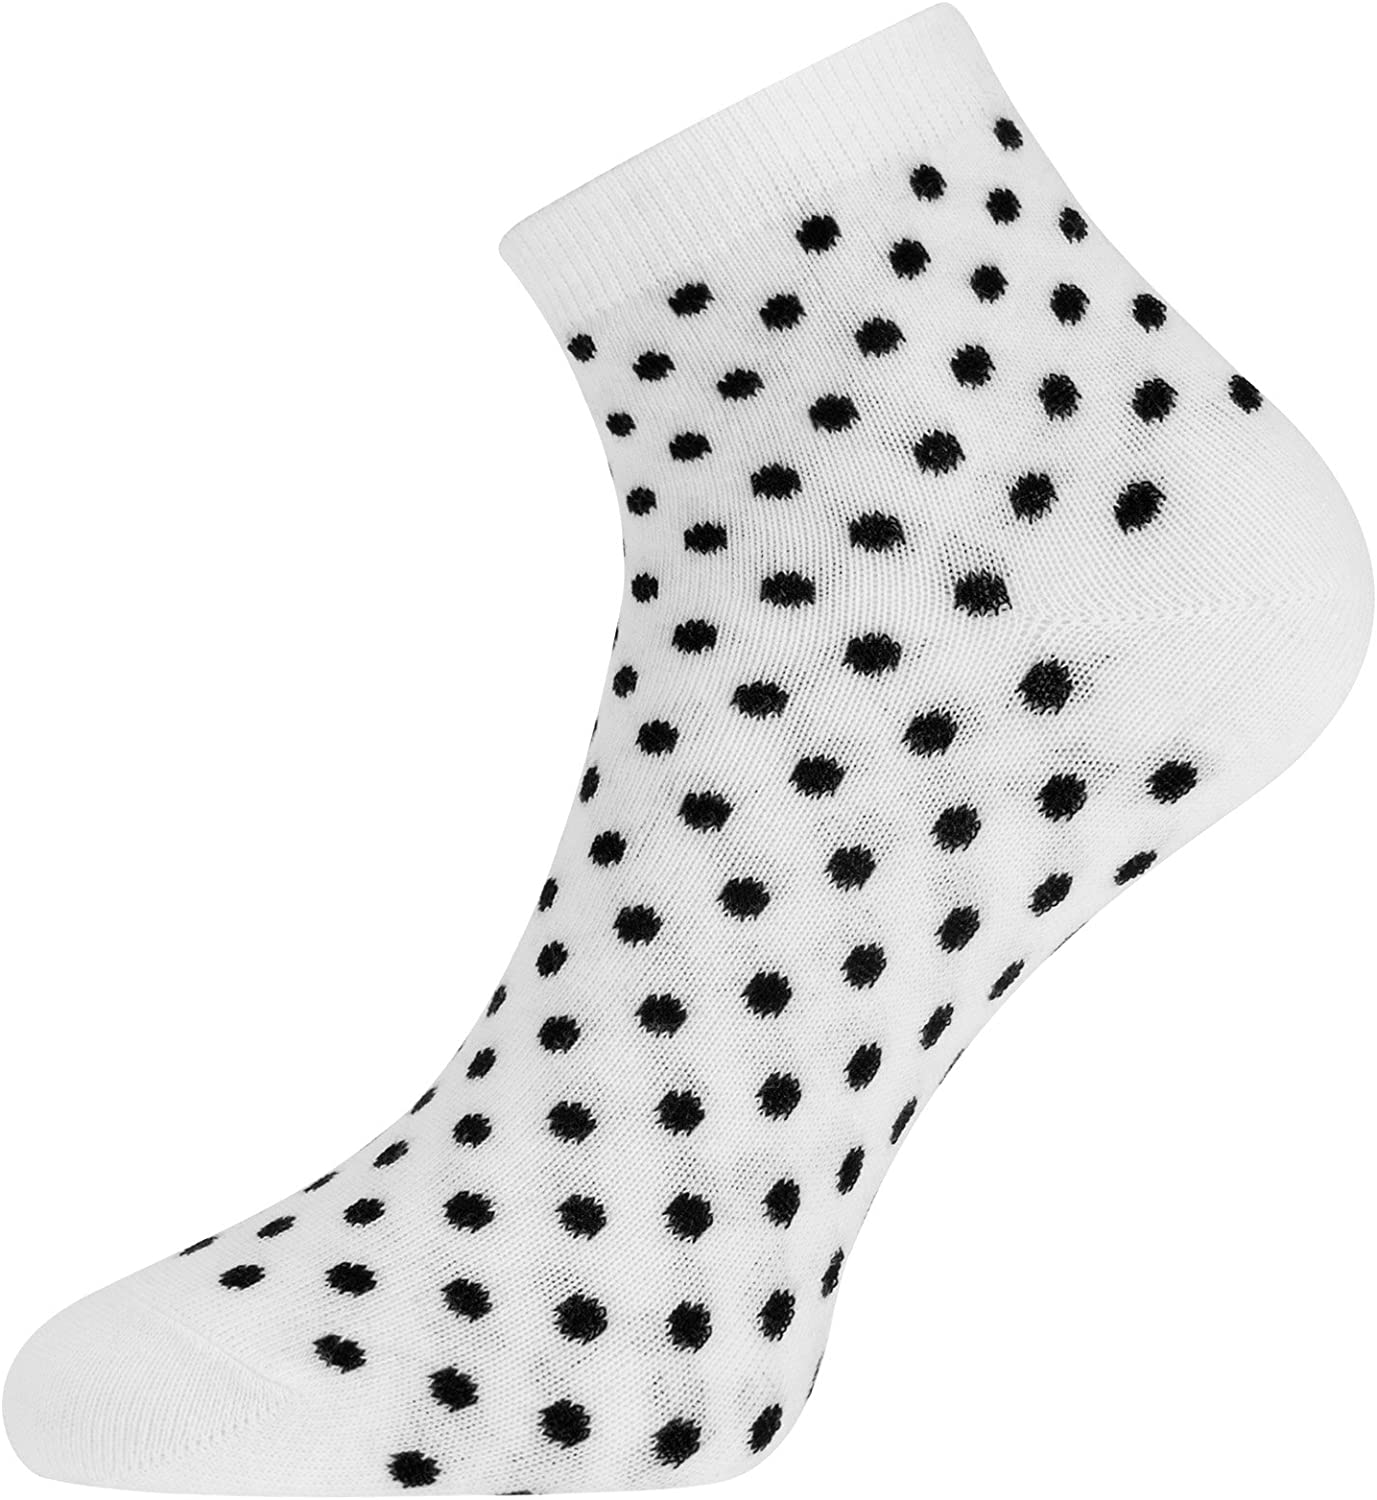 oodji Collection Womens Liner Socks Pack of 6